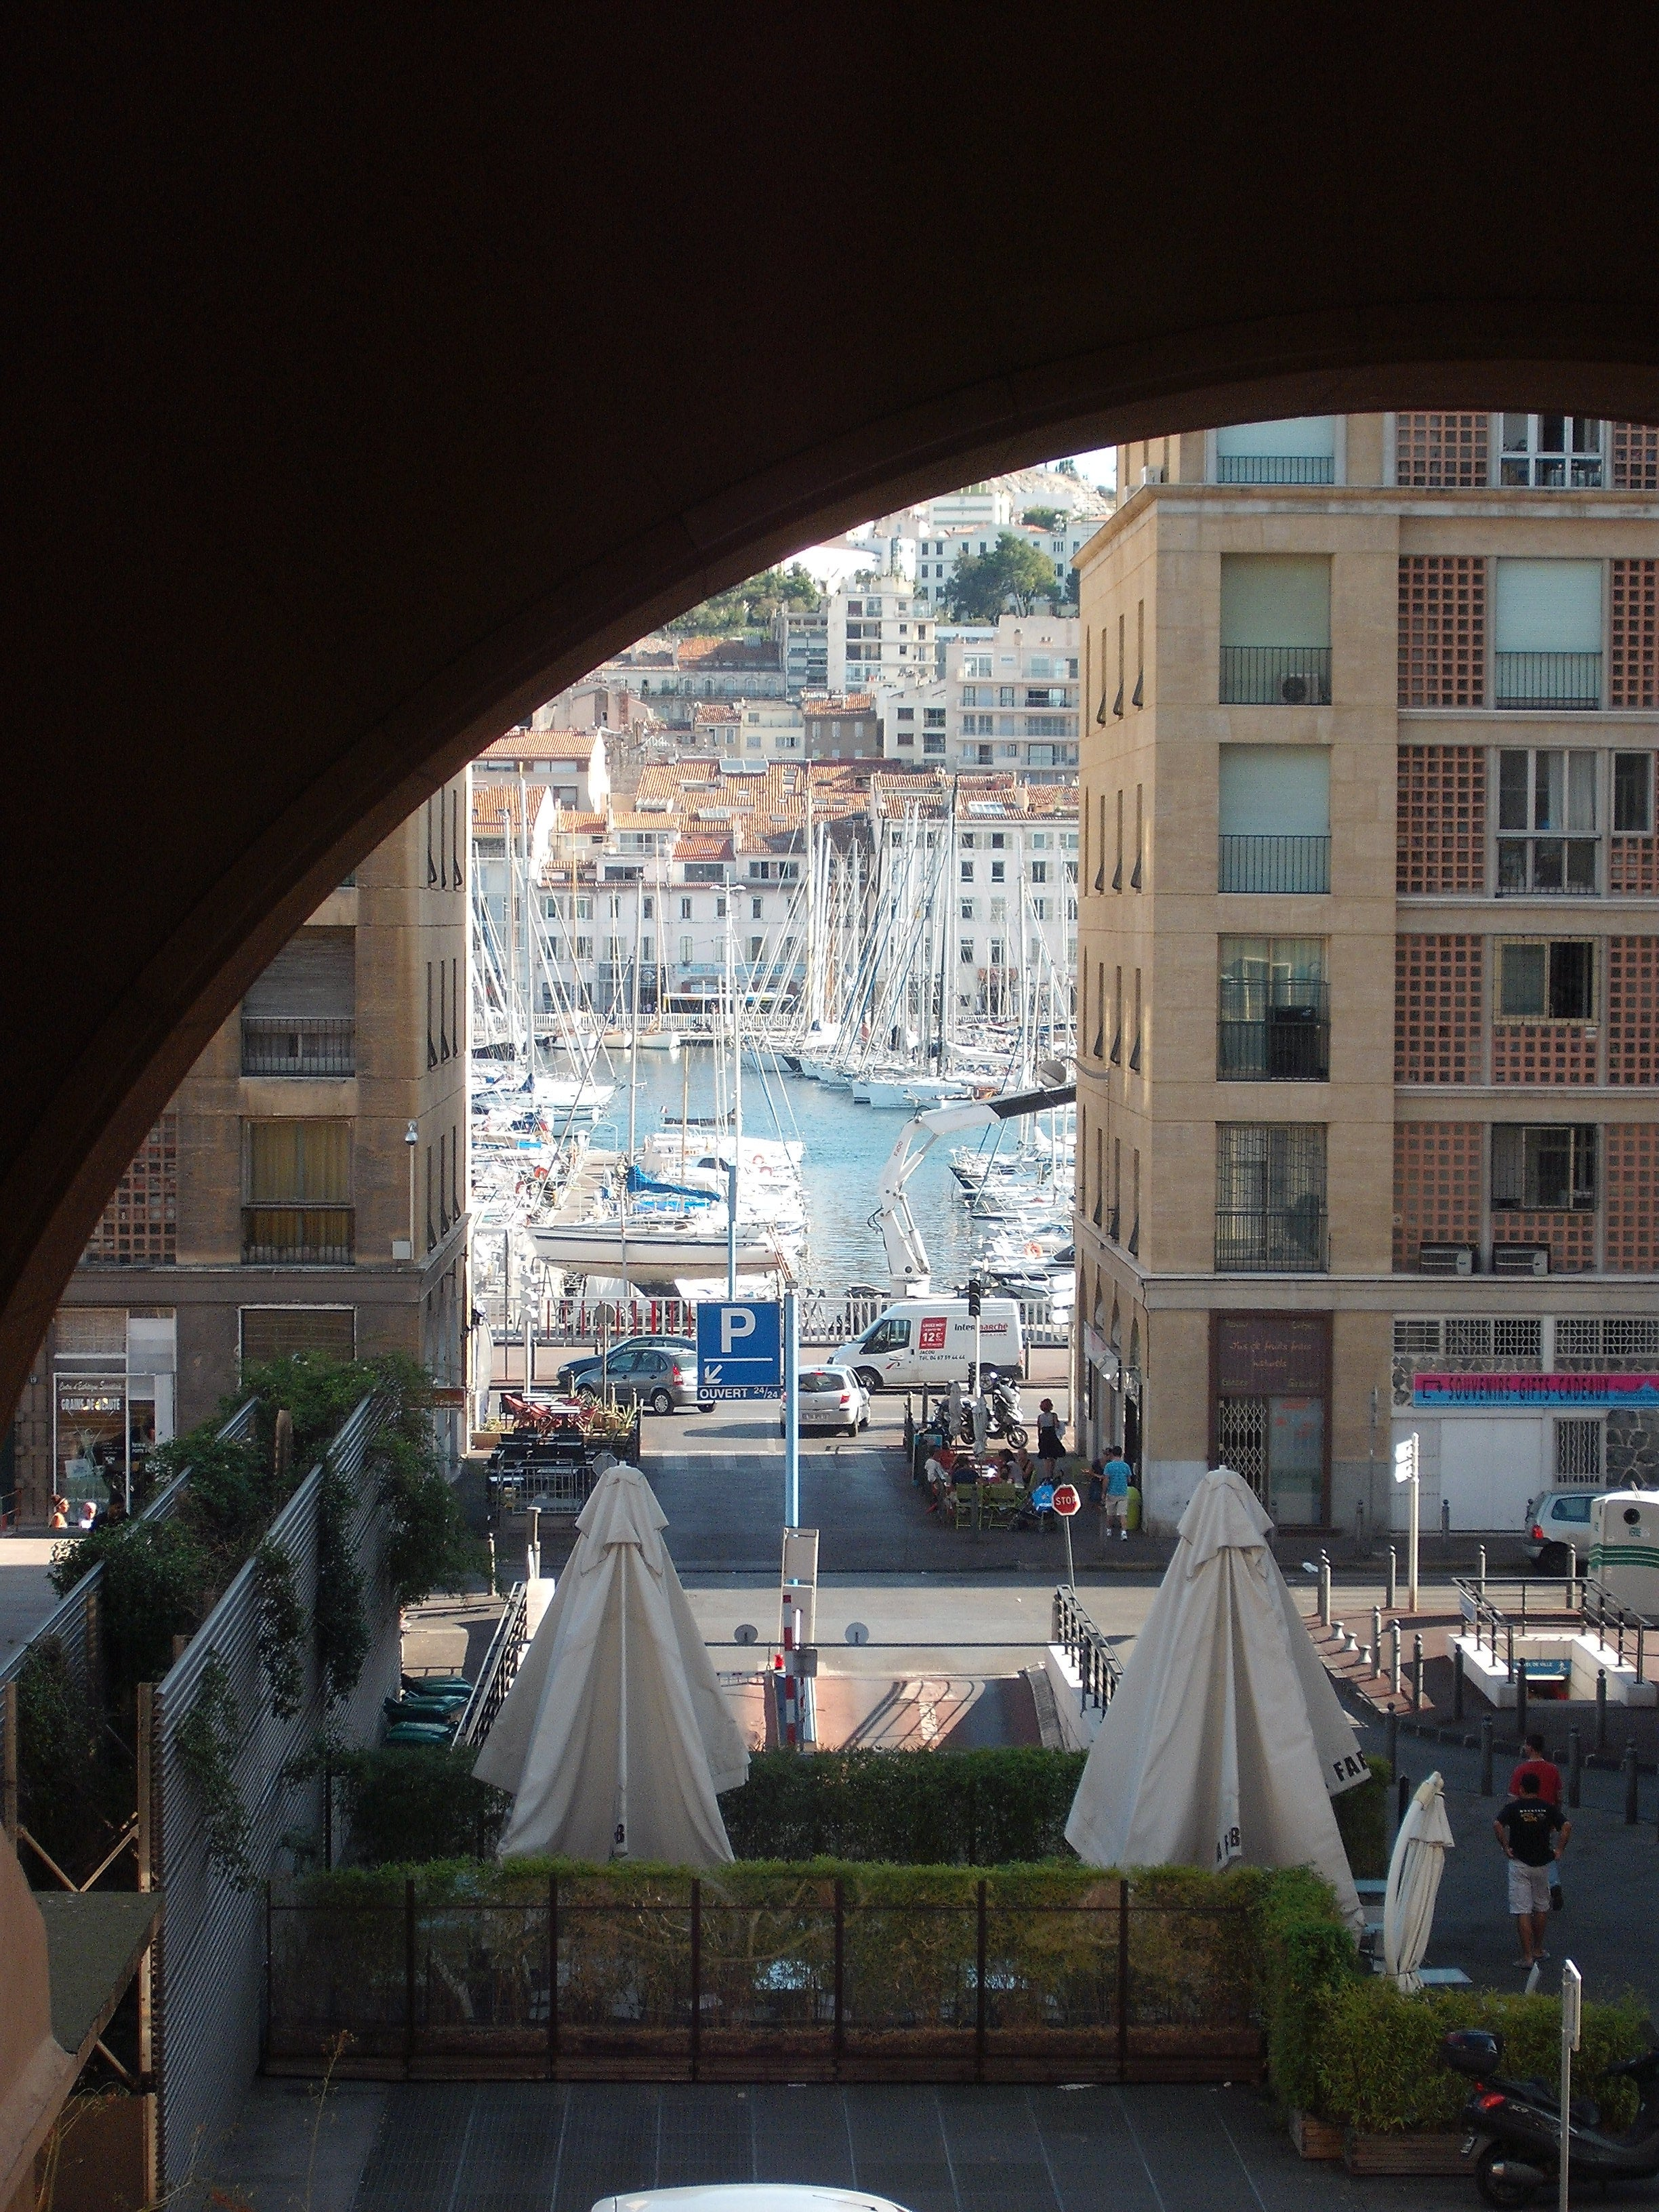 Tourism in Port of Marseille